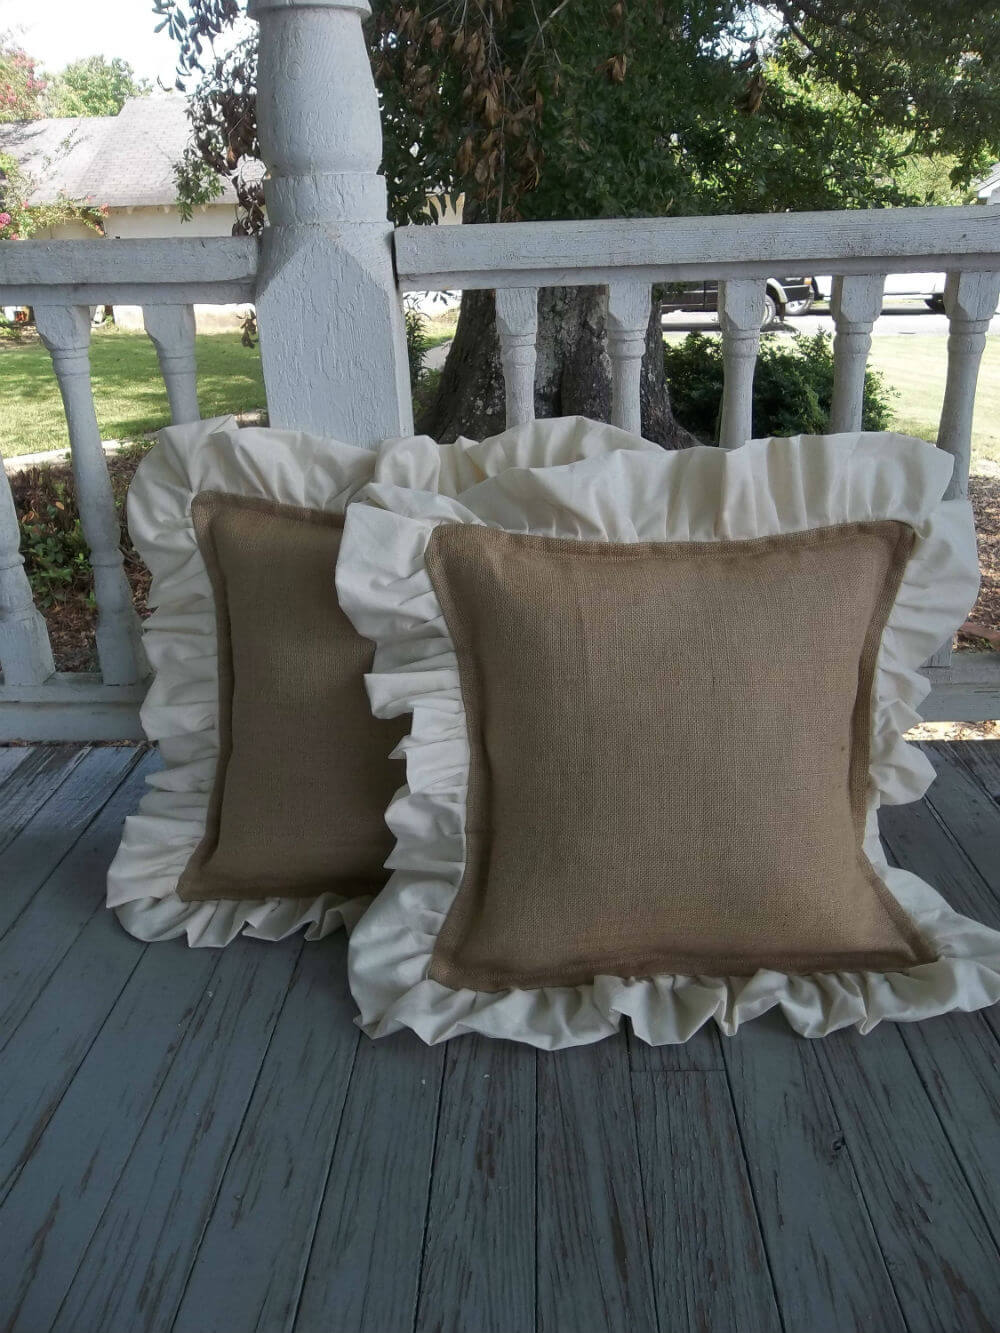 White Ruffled Burlap Decor Pillow Covers